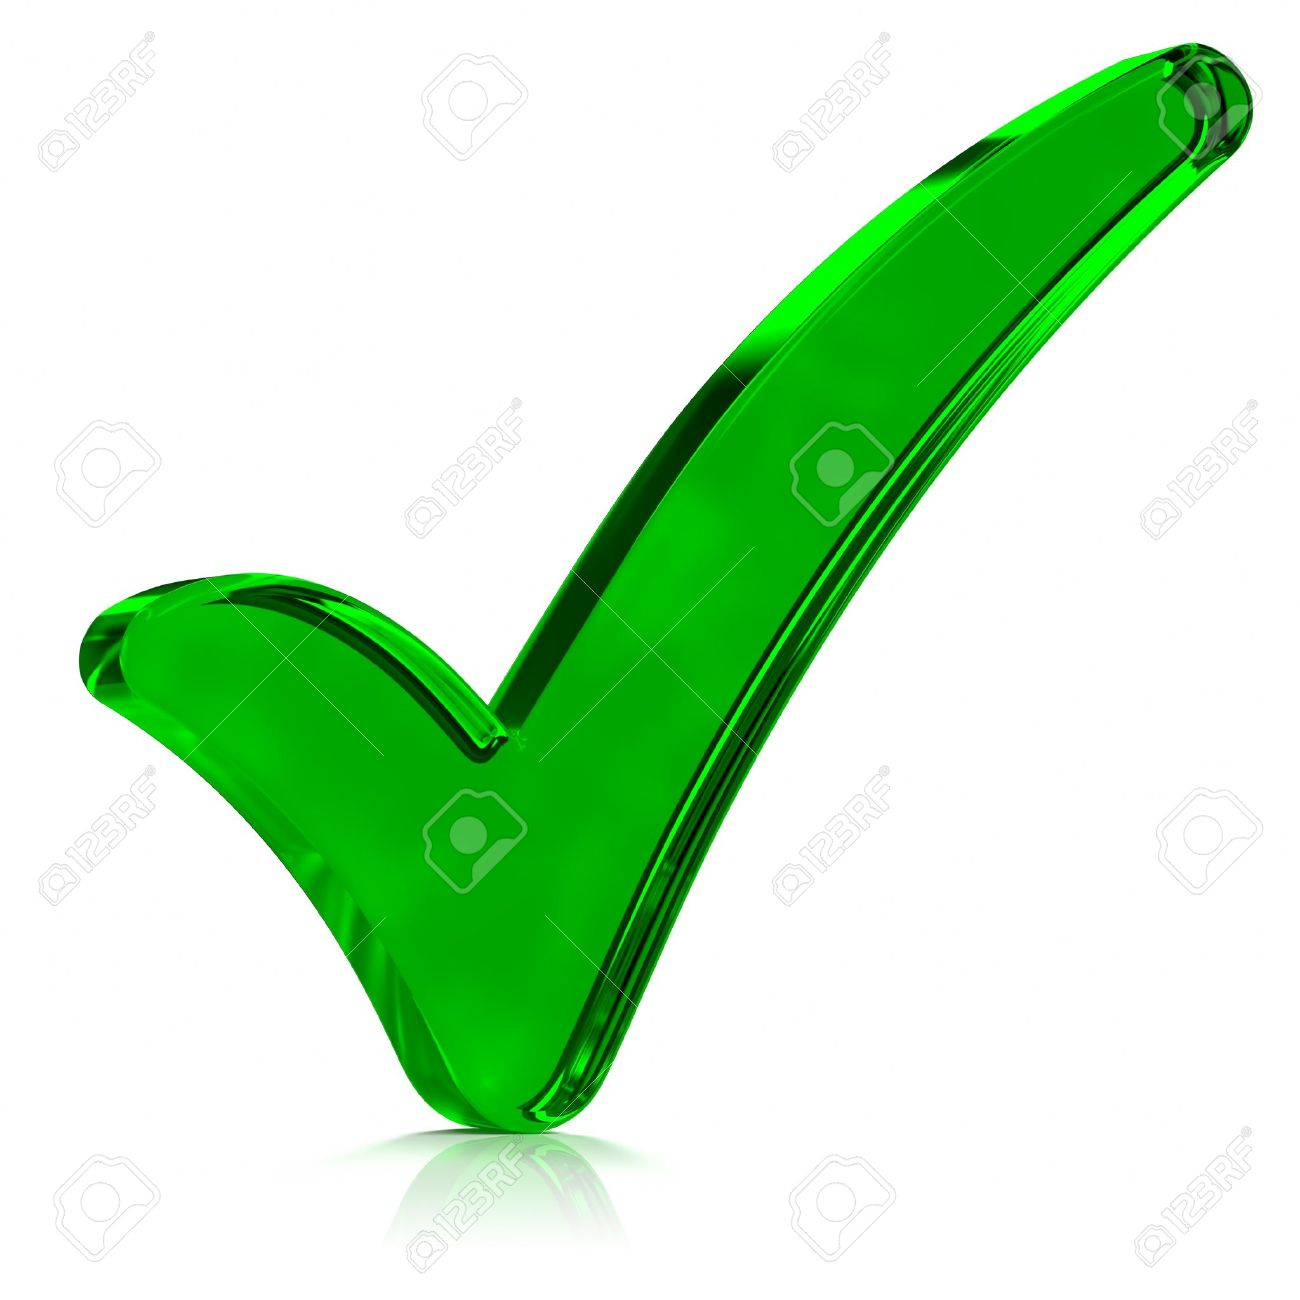 Green Glass Check Mark Symbol Part Of A Series Stock Photo